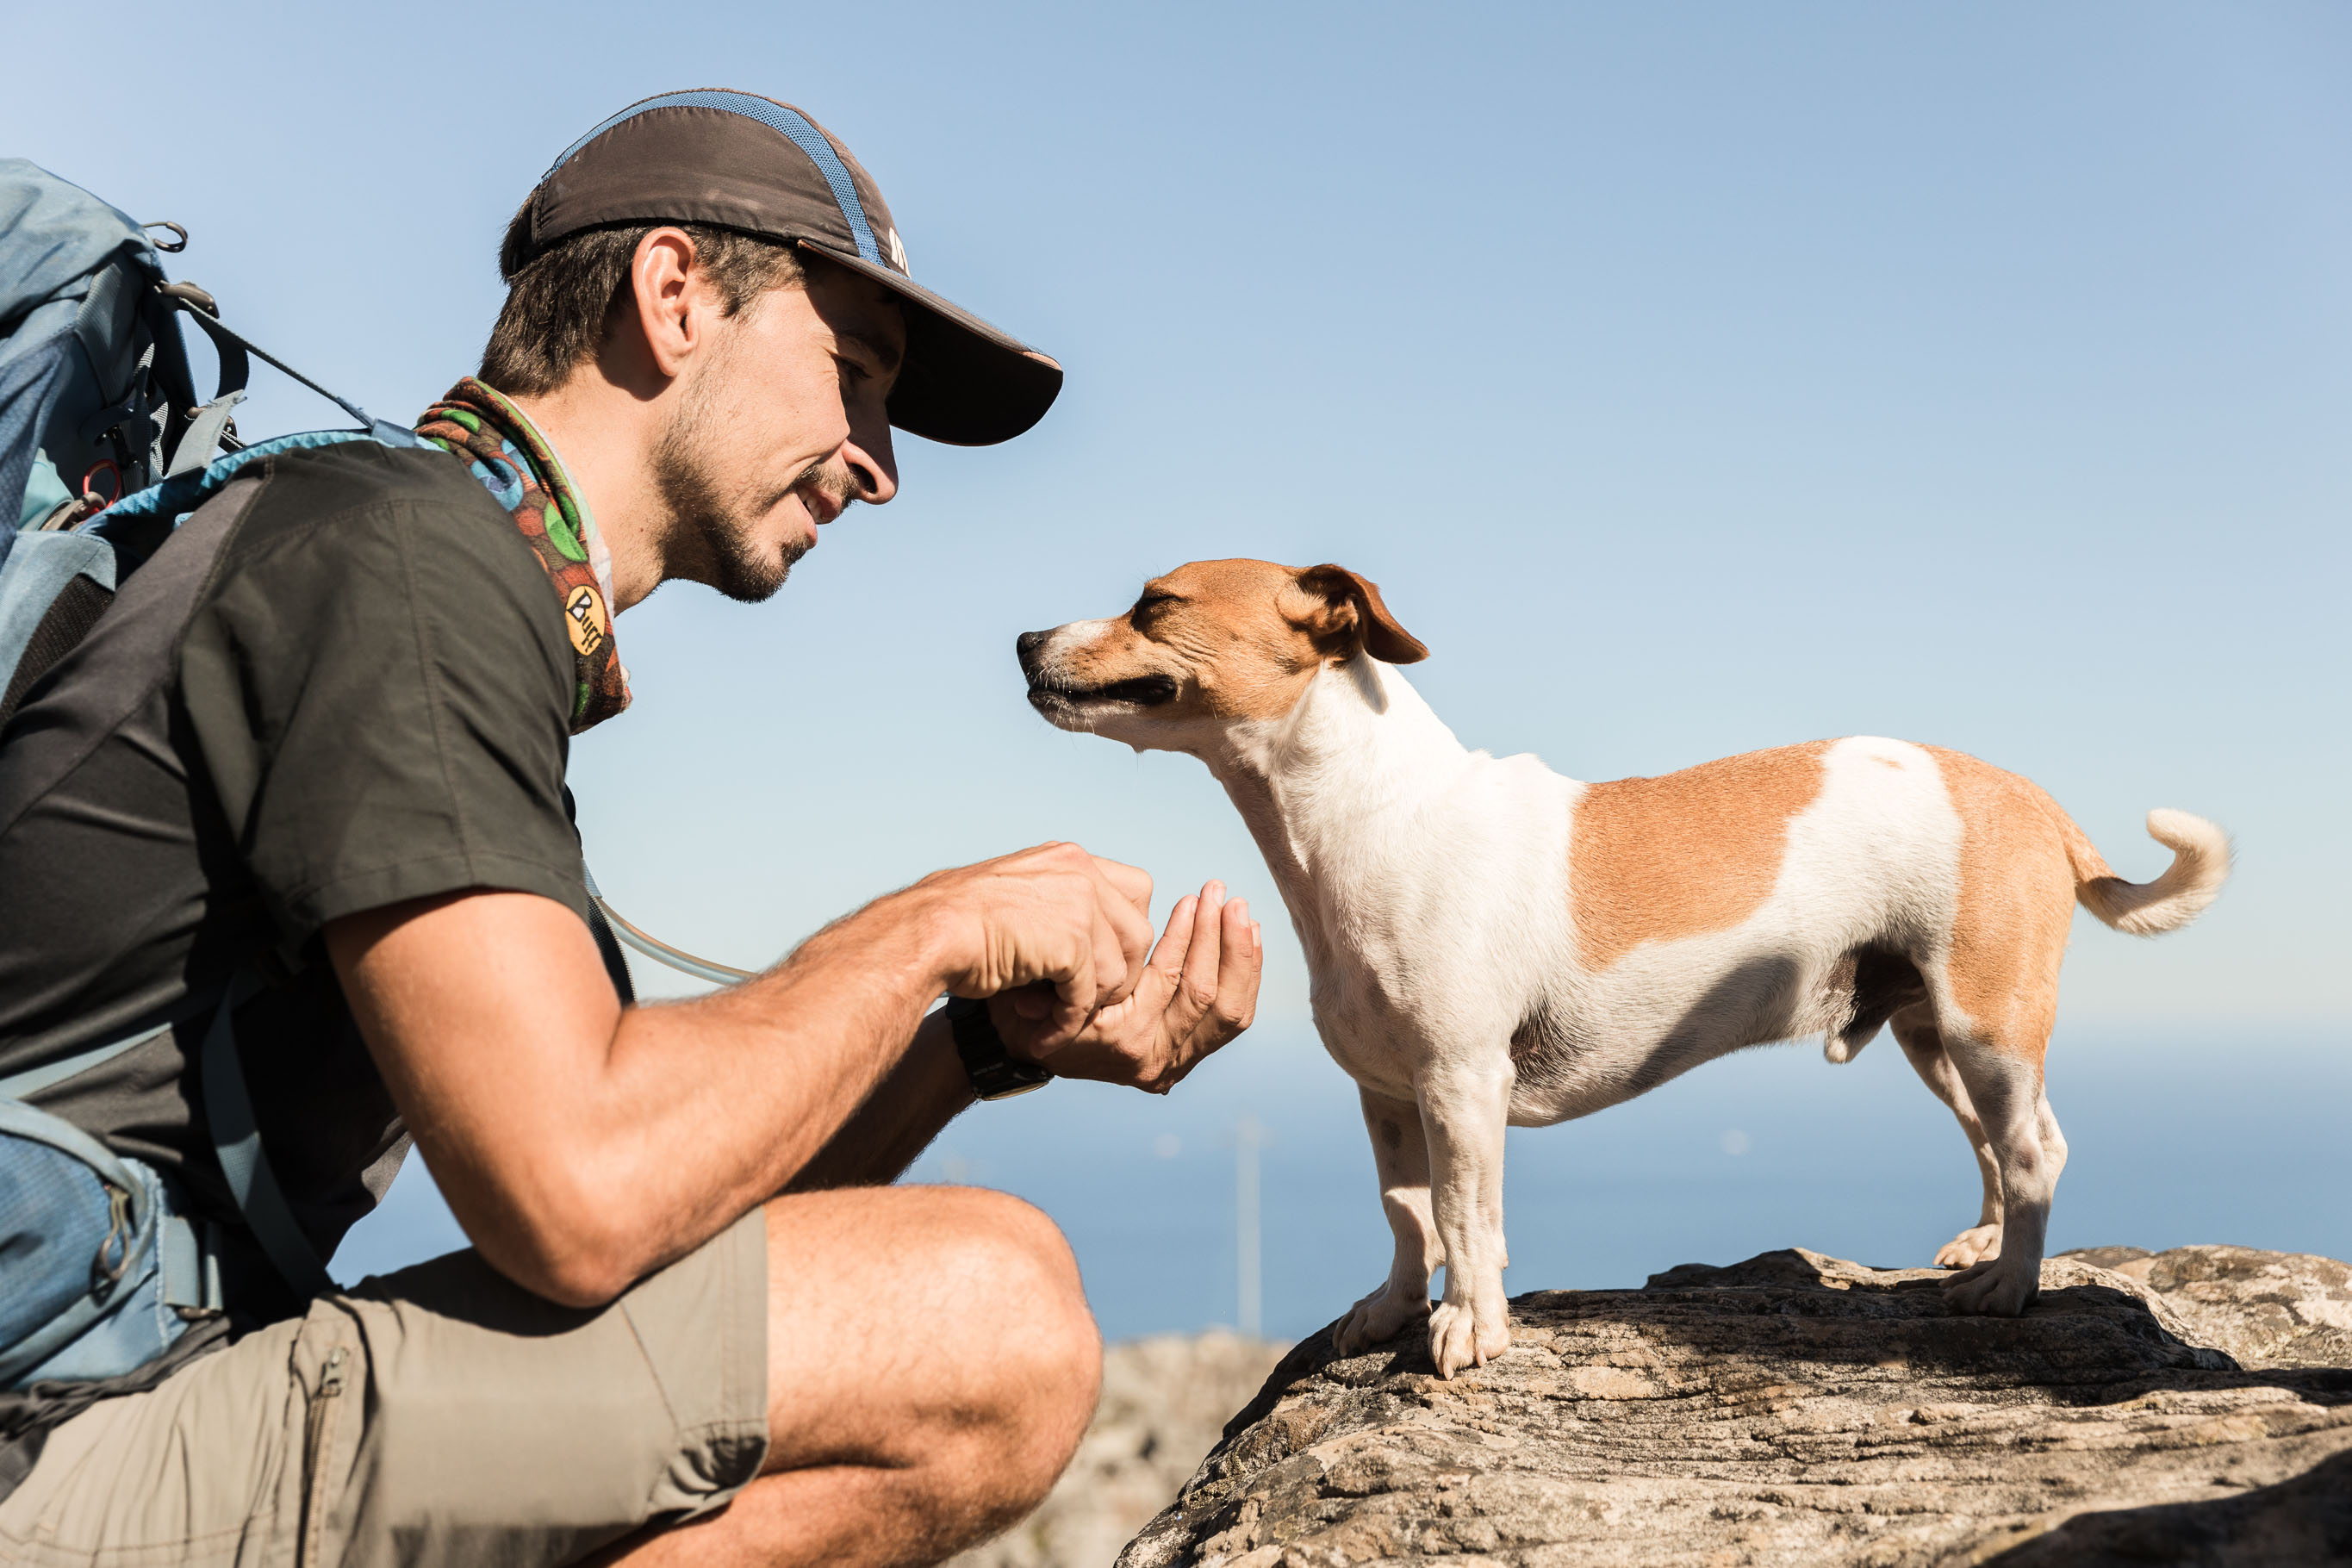 Look for the Airbnb experience called Hike Table Mountain with a Guide!